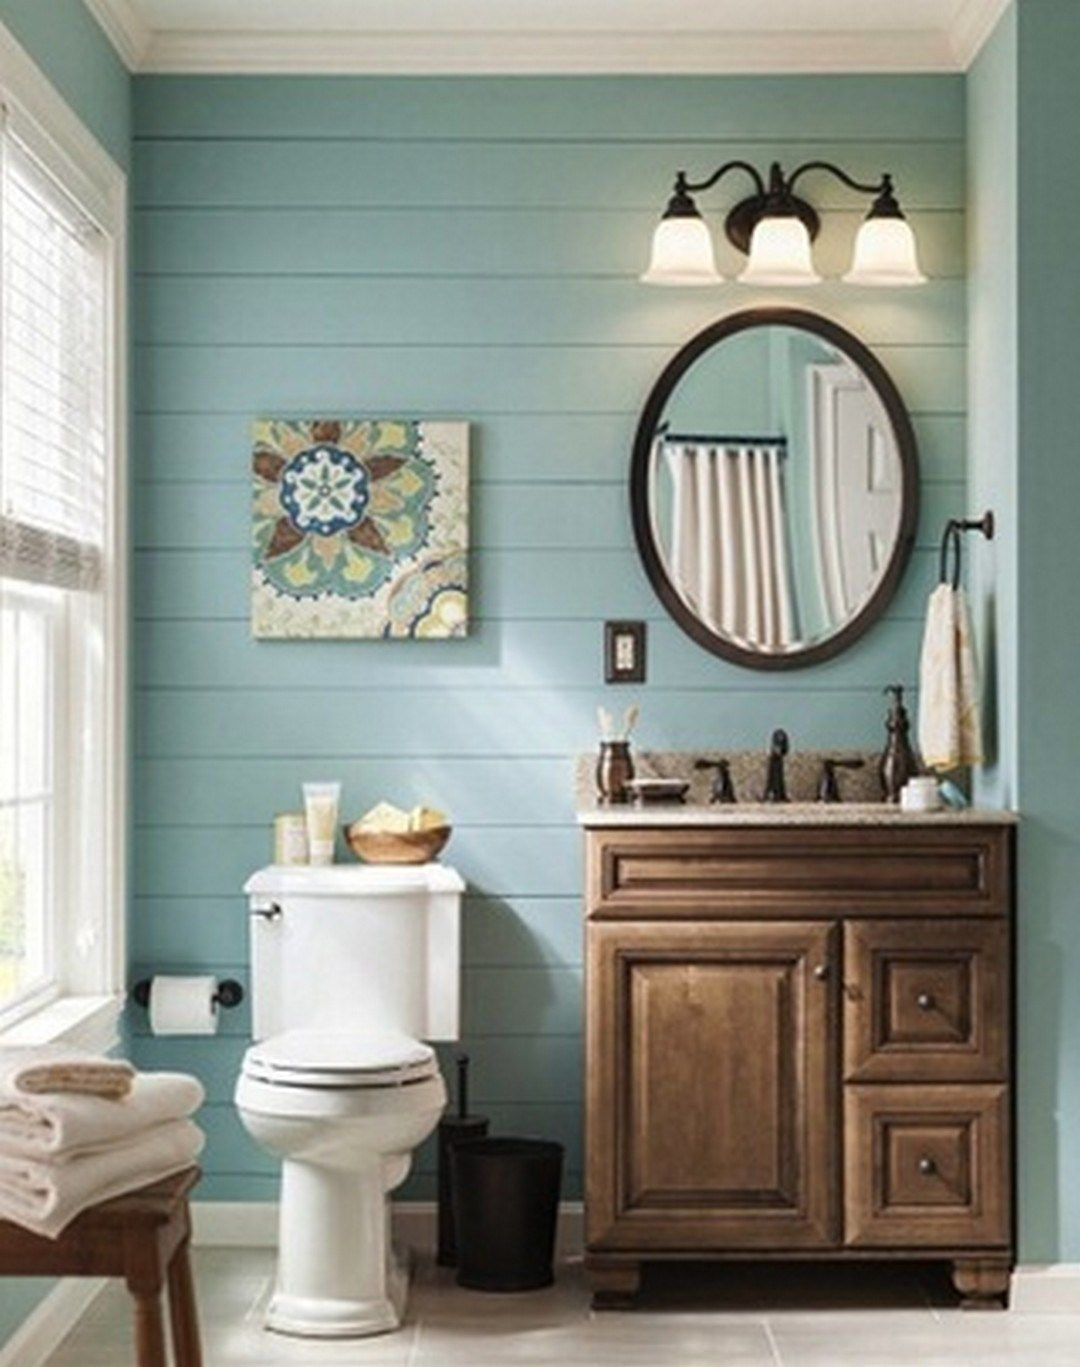 99 small master bathroom makeover ideas on a budget (88) | home